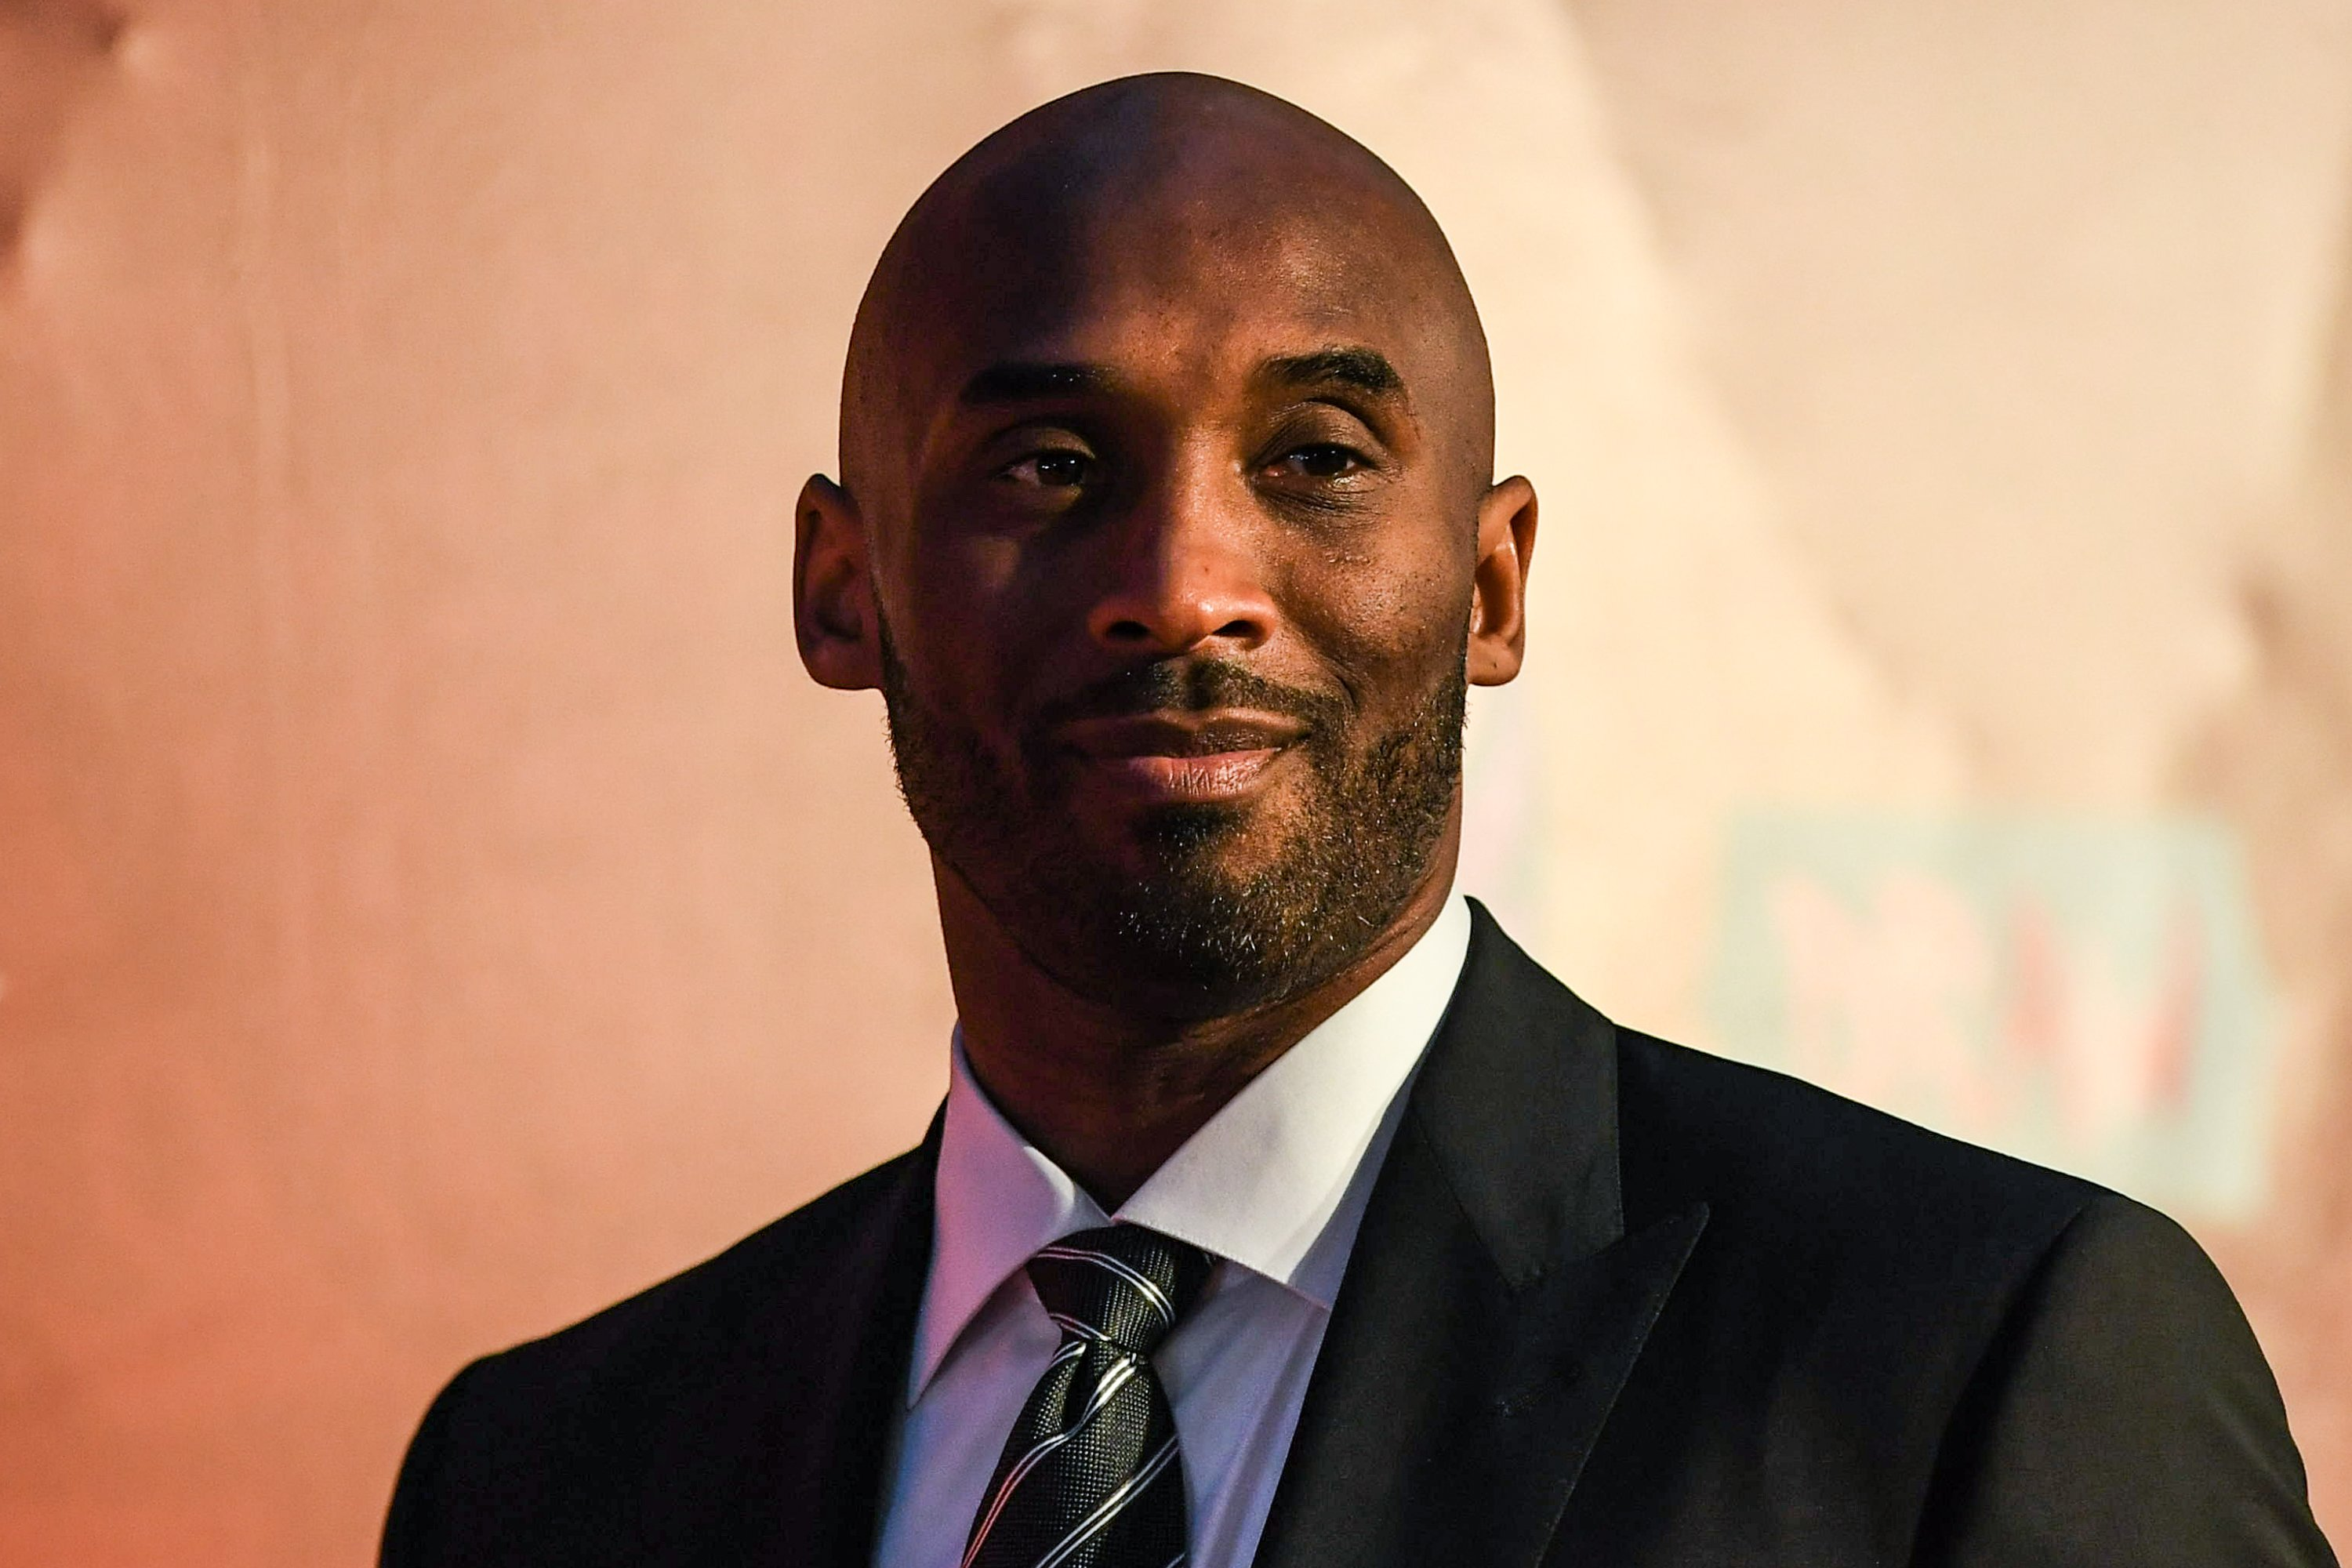 Kobe Bryant during the FIBA Basketball World Cup 2019 Draw Ceremony on March 16, 2019, in Shenzhen, China. | Source: Getty Images.